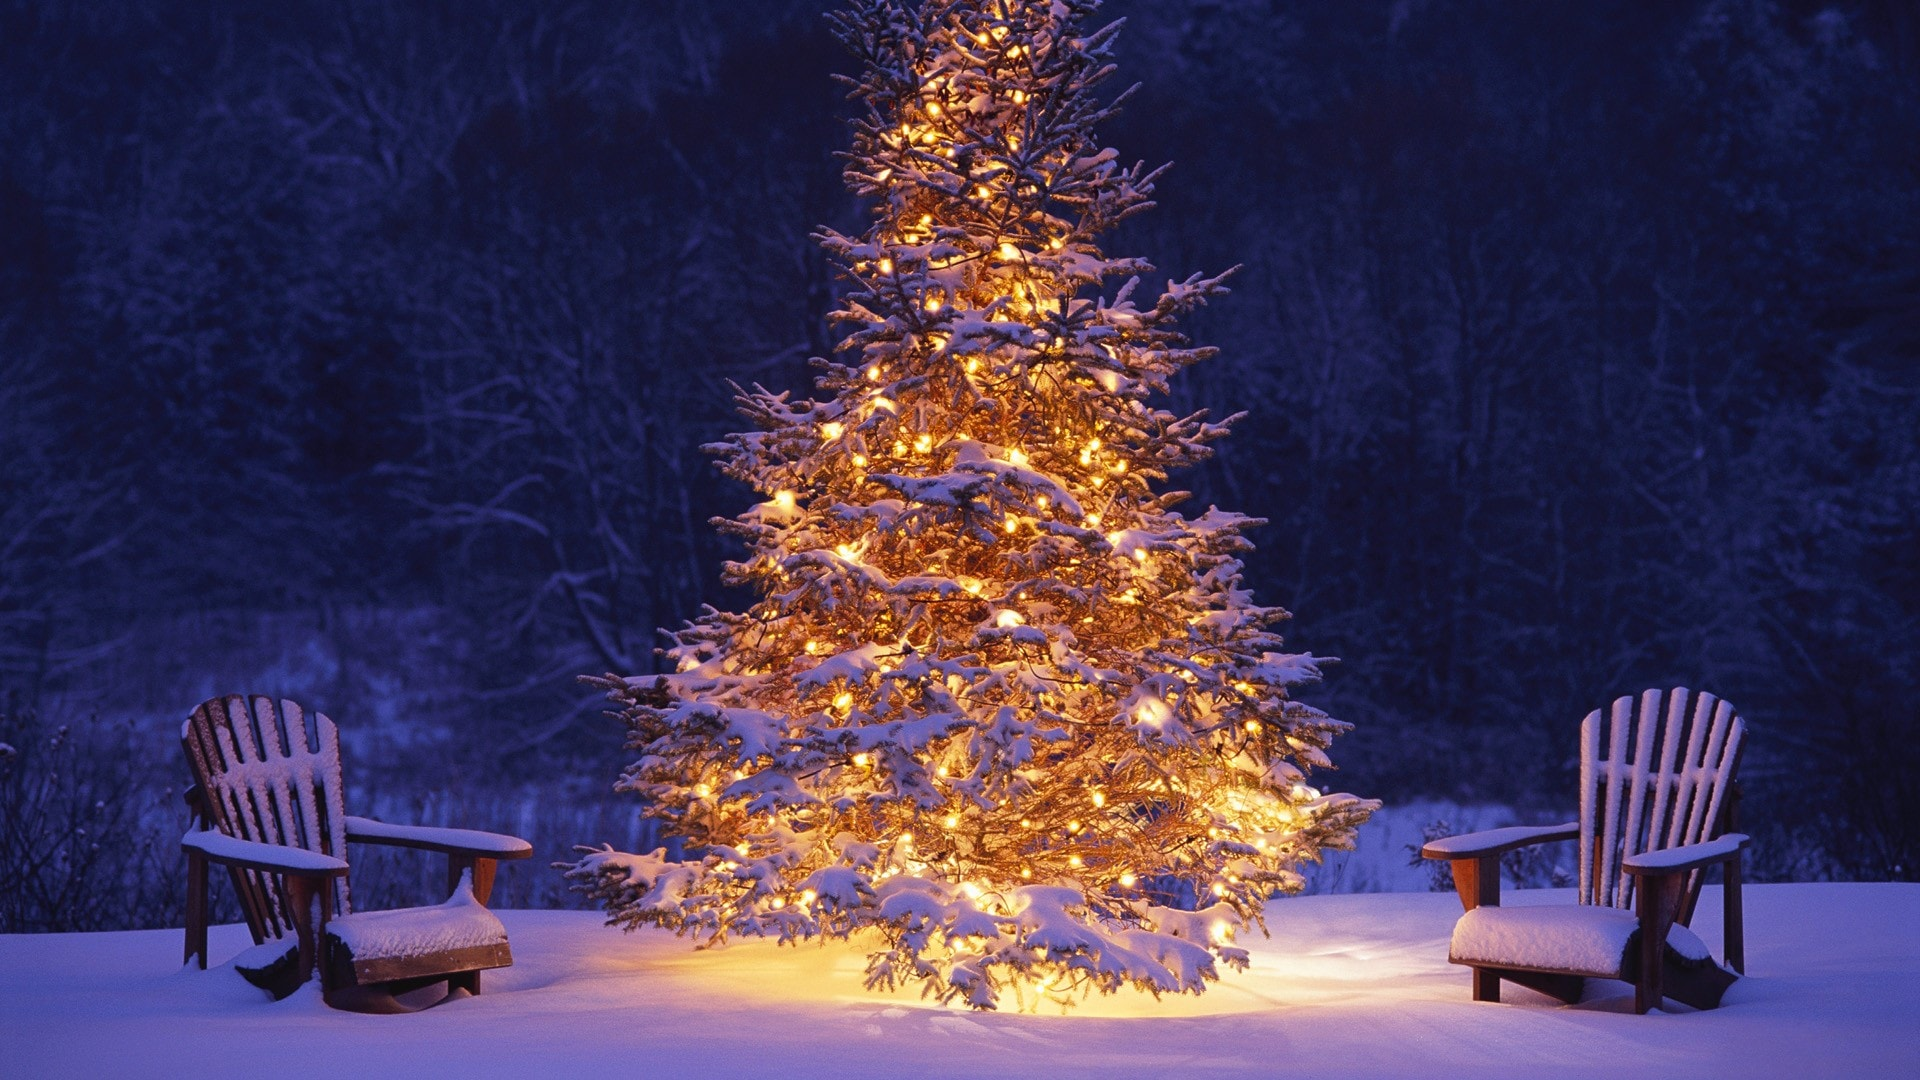 Get The Latest Hd Christmas Wallpapers For Free